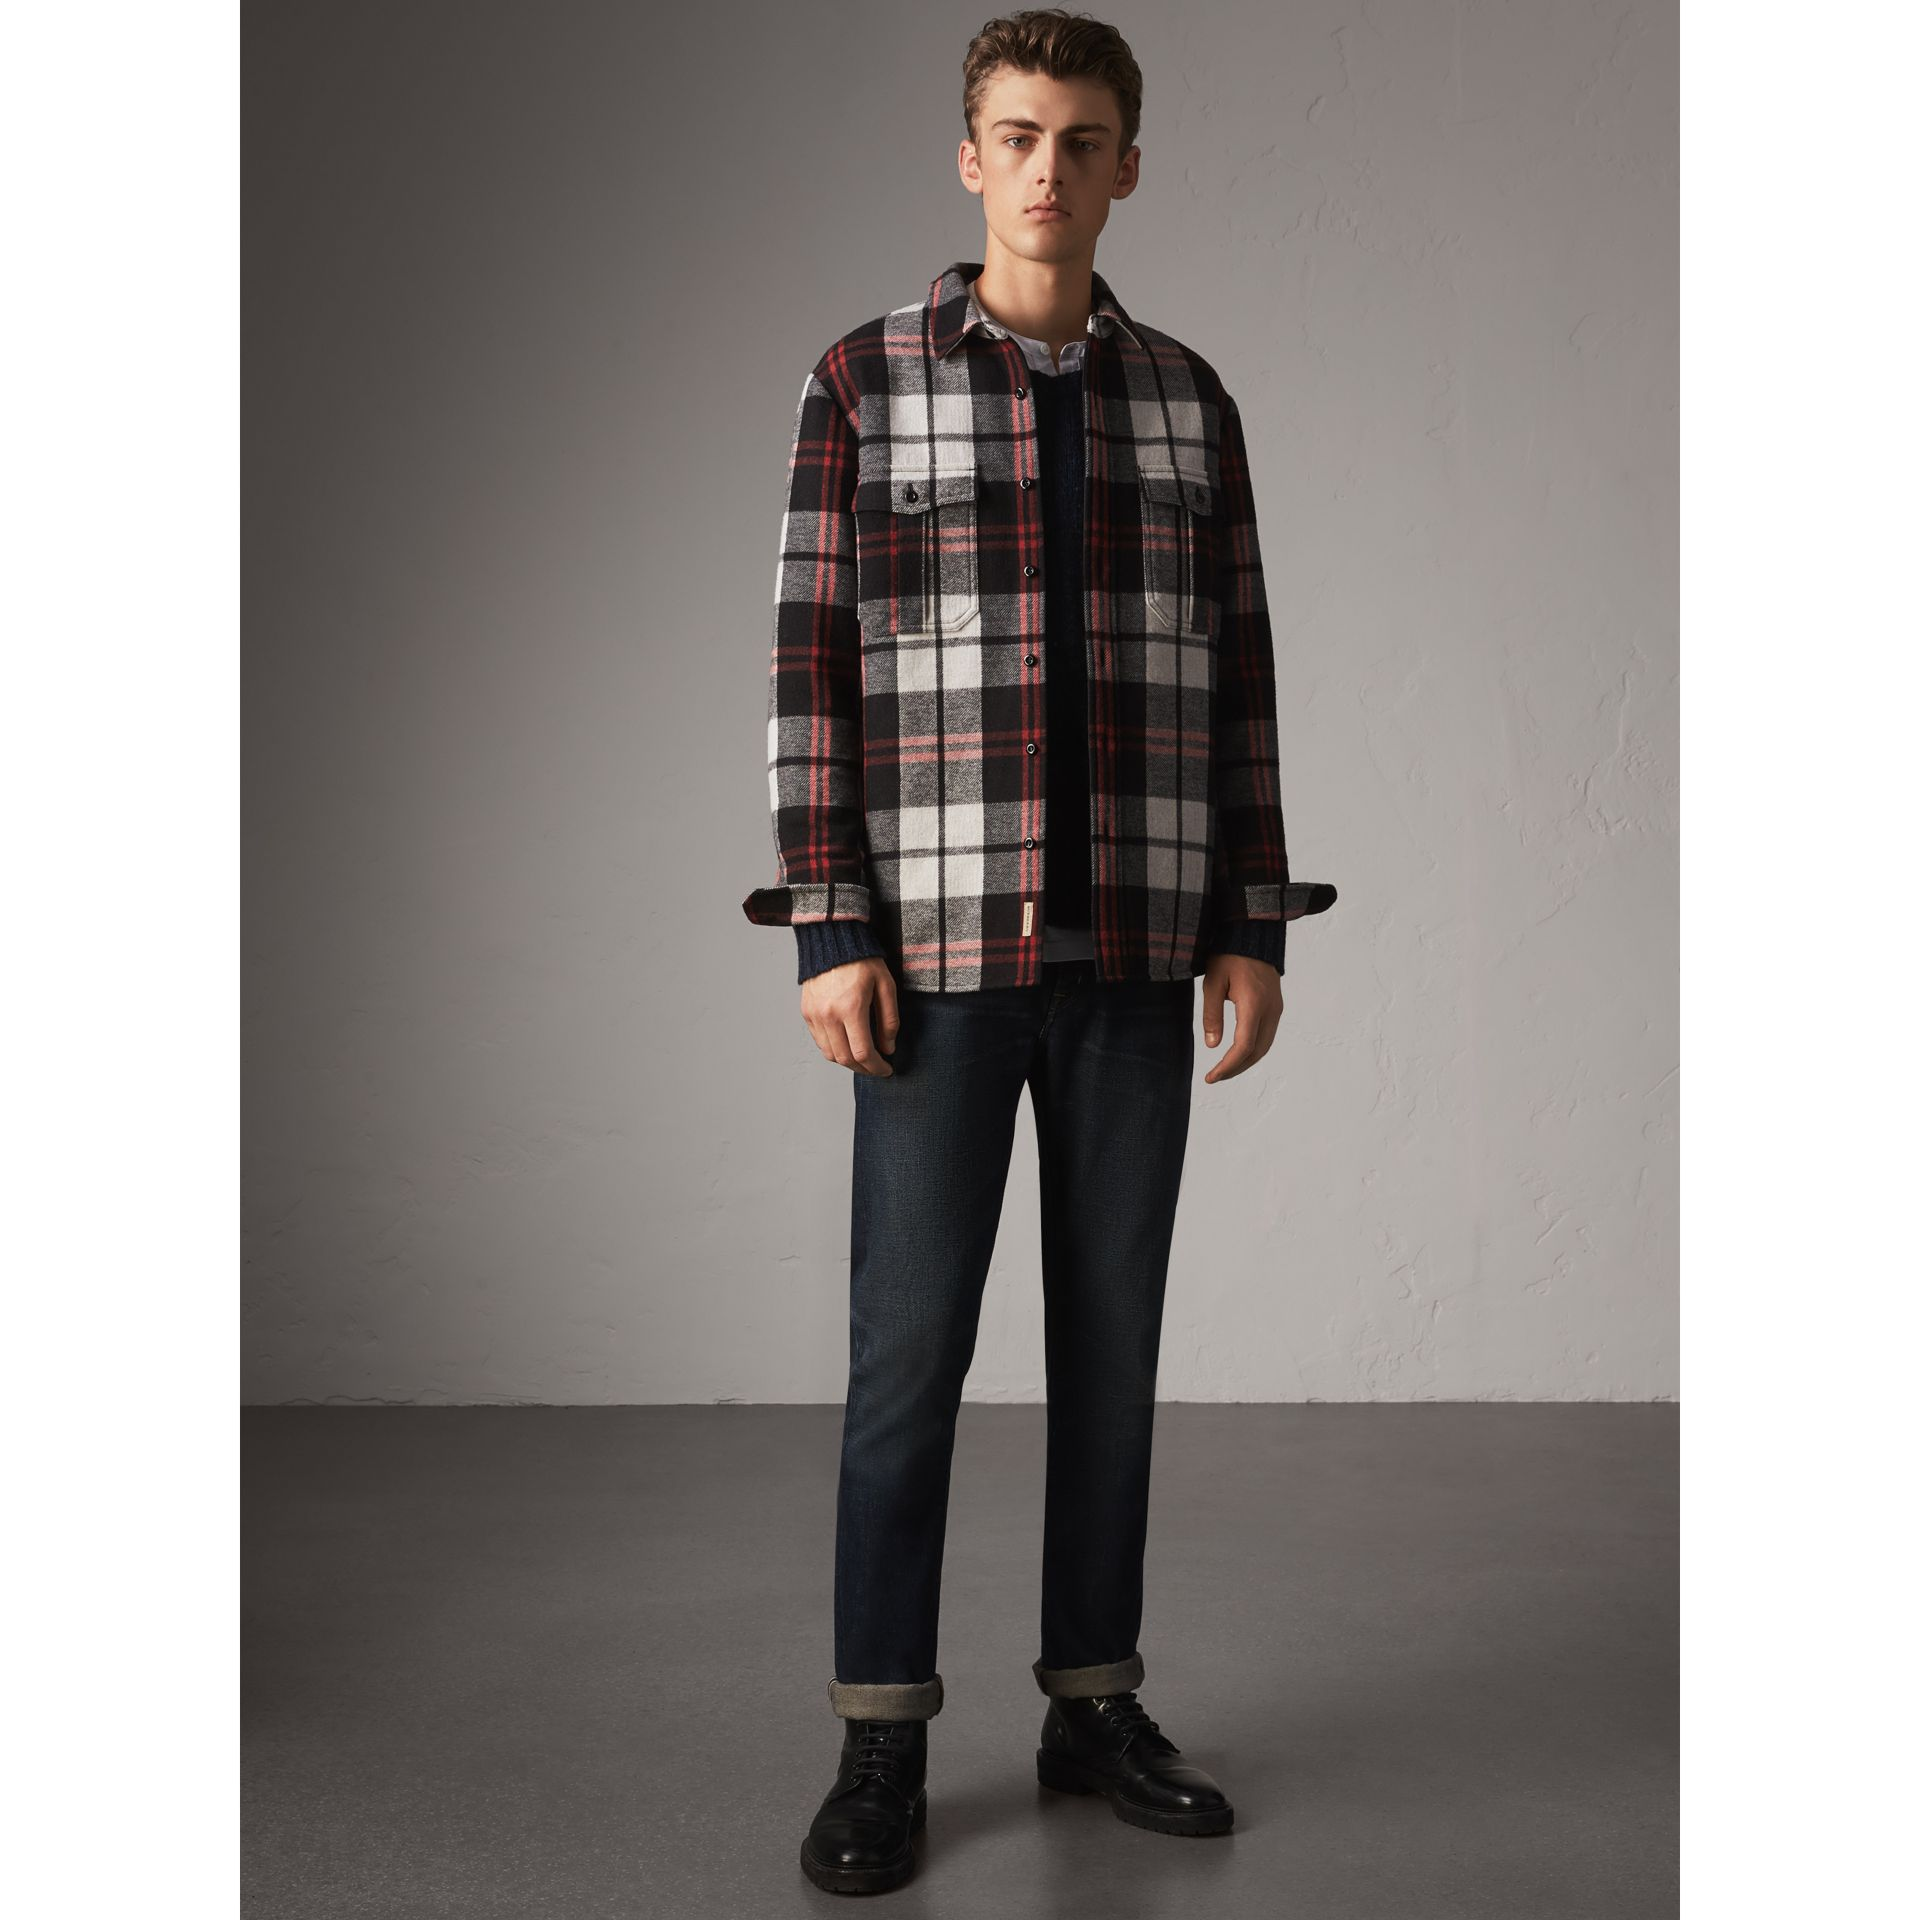 Quilt-lined Check Wool Cotton Blend Flannel Shirt in Black - Men | Burberry - gallery image 1